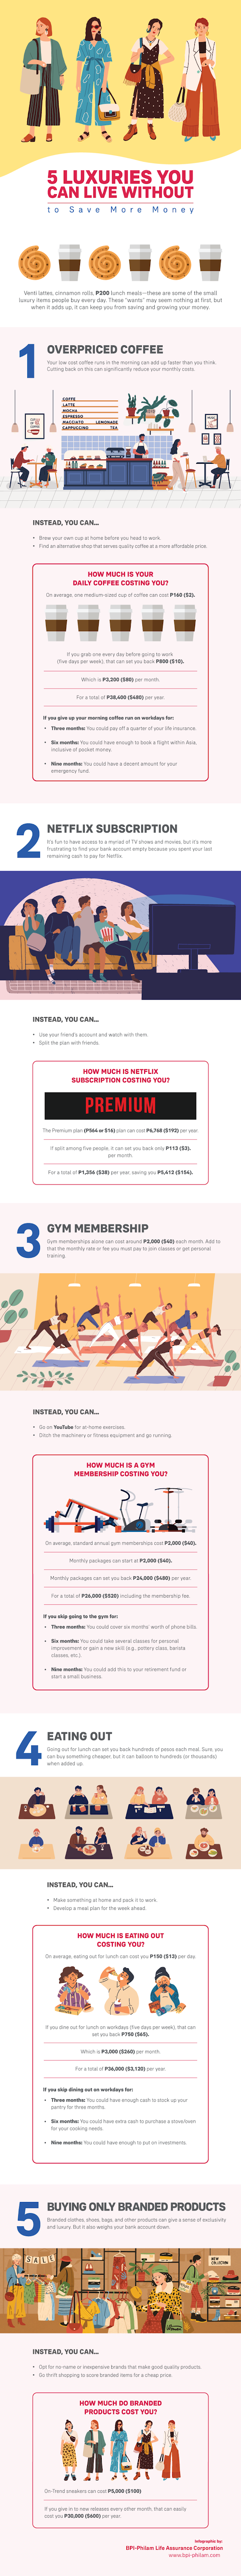 5 Luxuries You Can Live Without To Save More Money #infographic